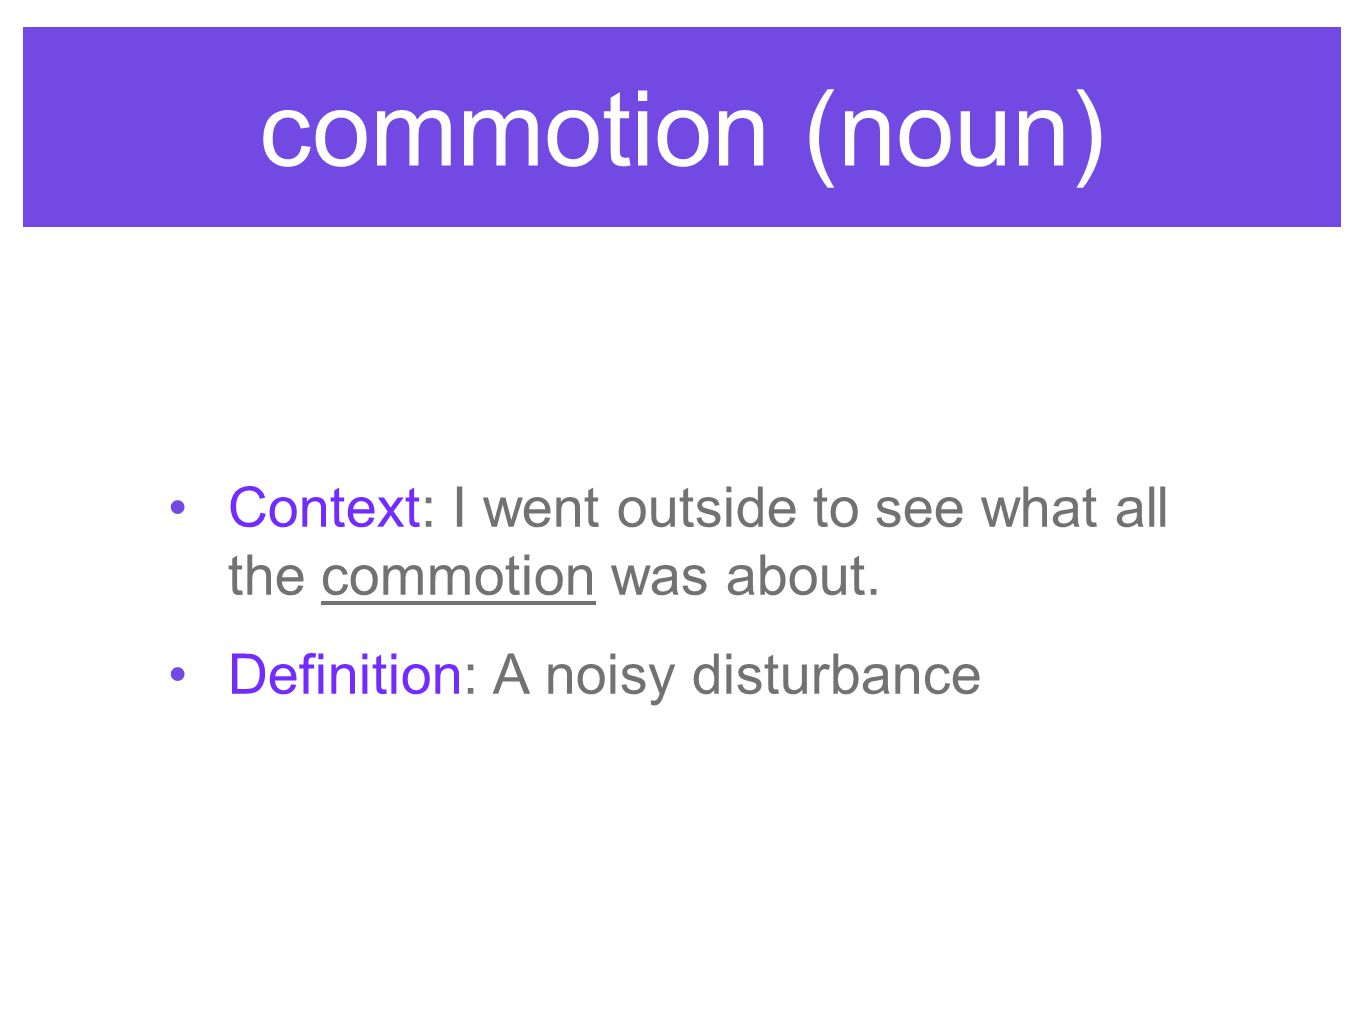 commotion (noun) Context: I went outside to see what all the commotion was about. Definition: A noisy disturbance